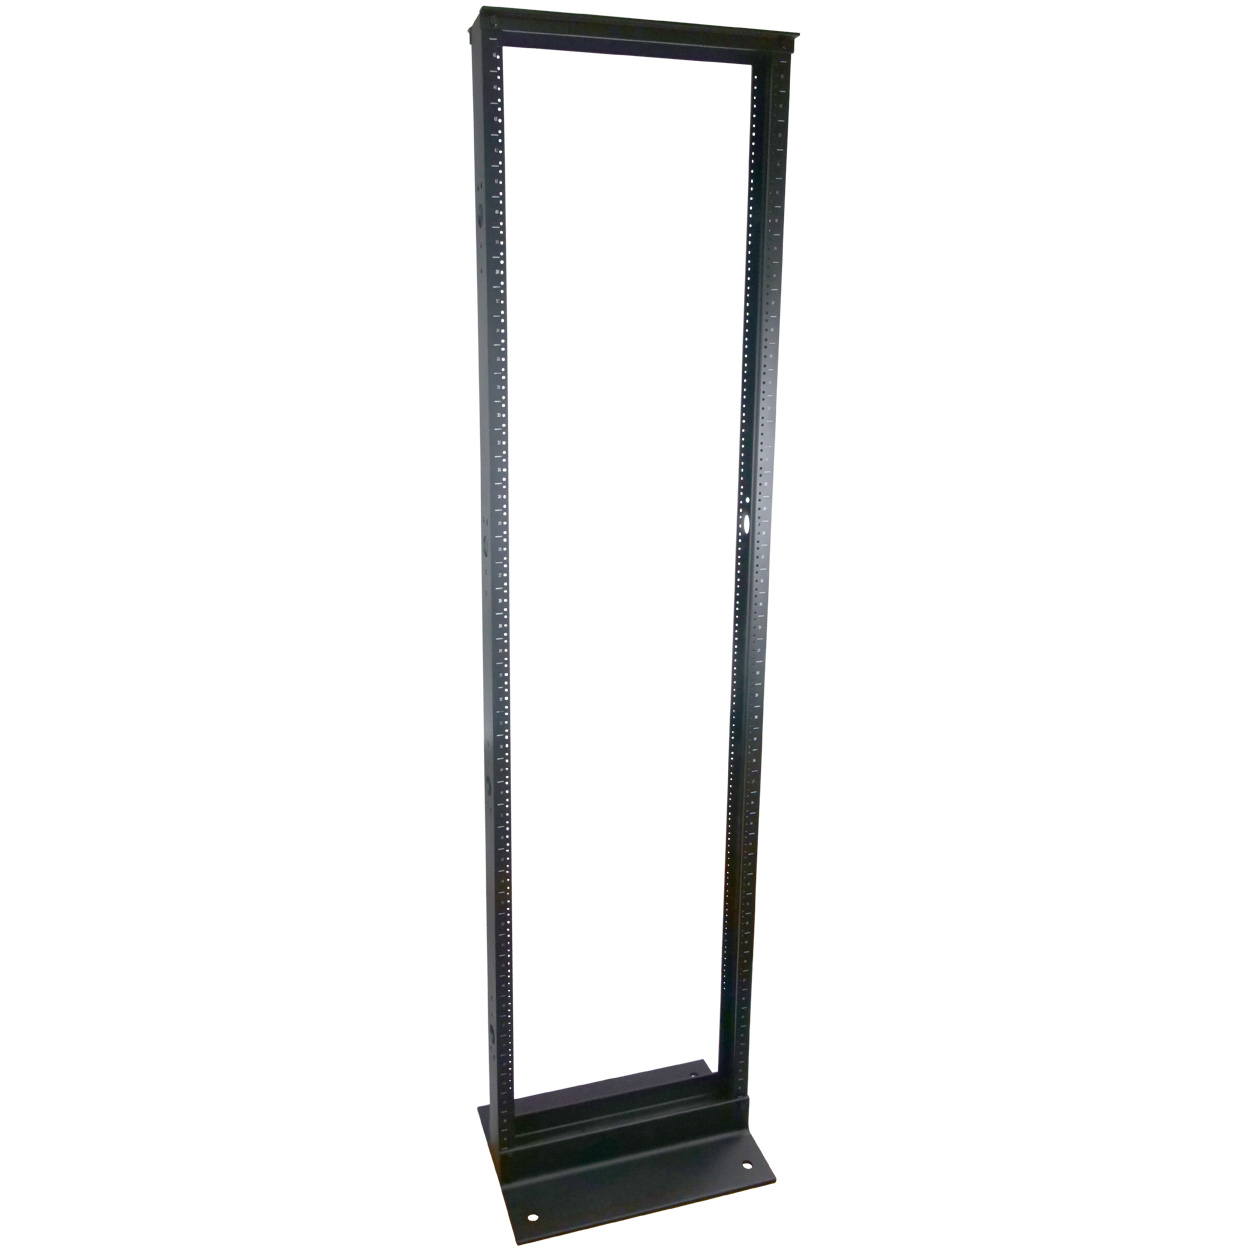 45U Aluminum 2-Post Open Frame Rack